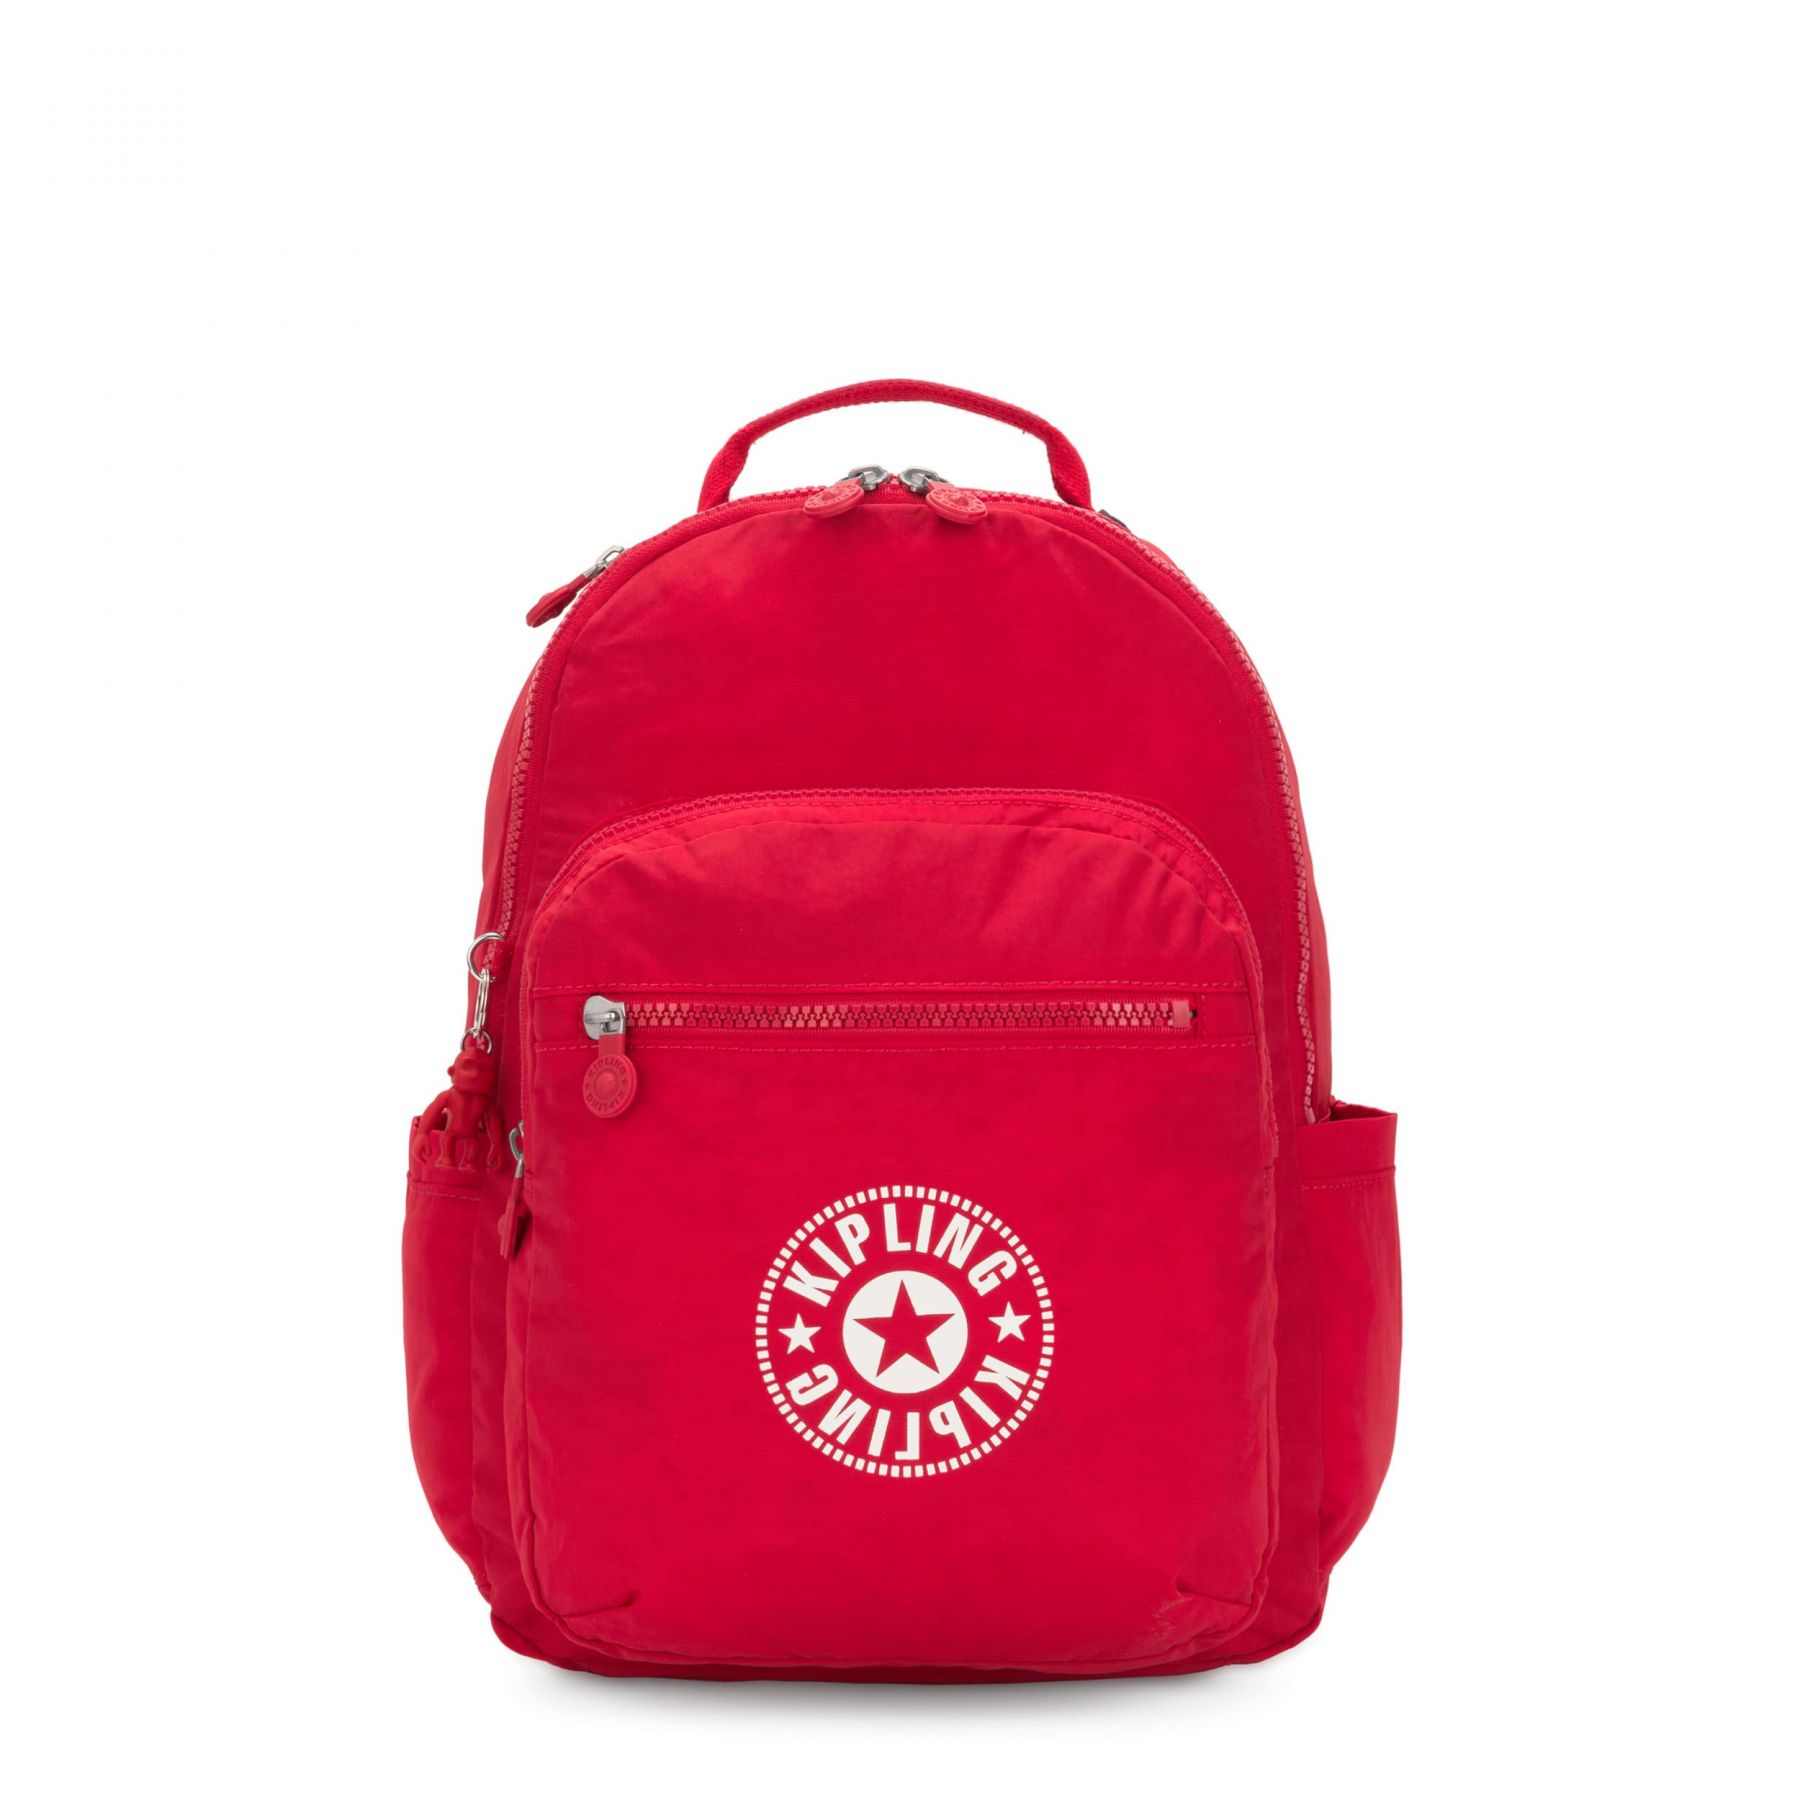 SEOUL Latest Backpacks by Kipling - Front view